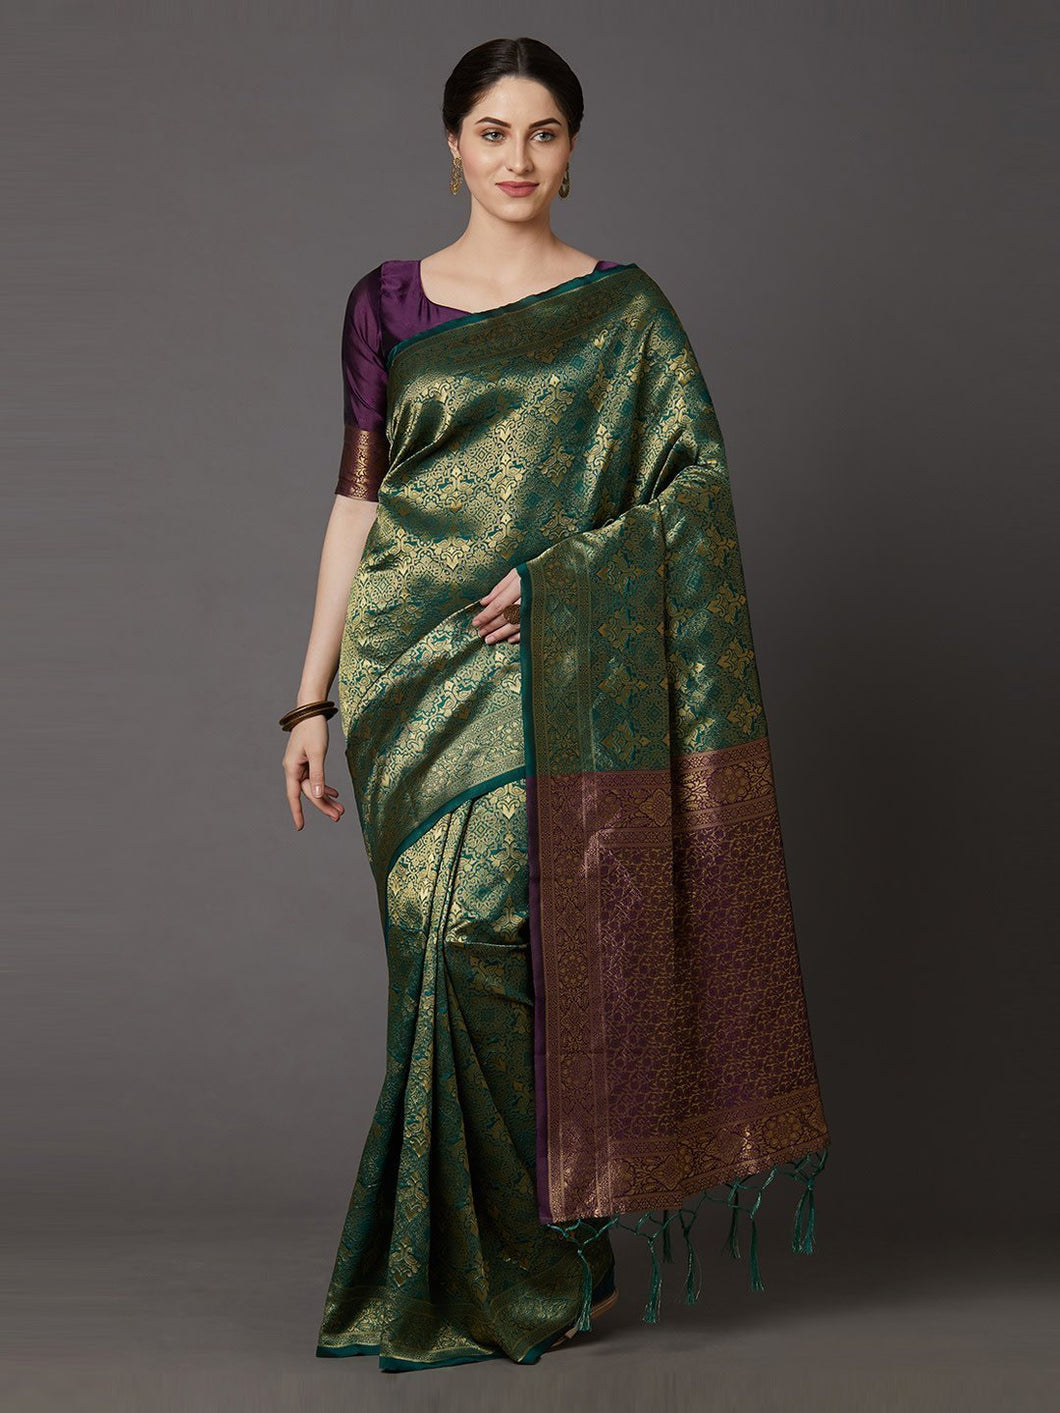 Green & Golden Silk Blend Woven Design Banarasi Saree